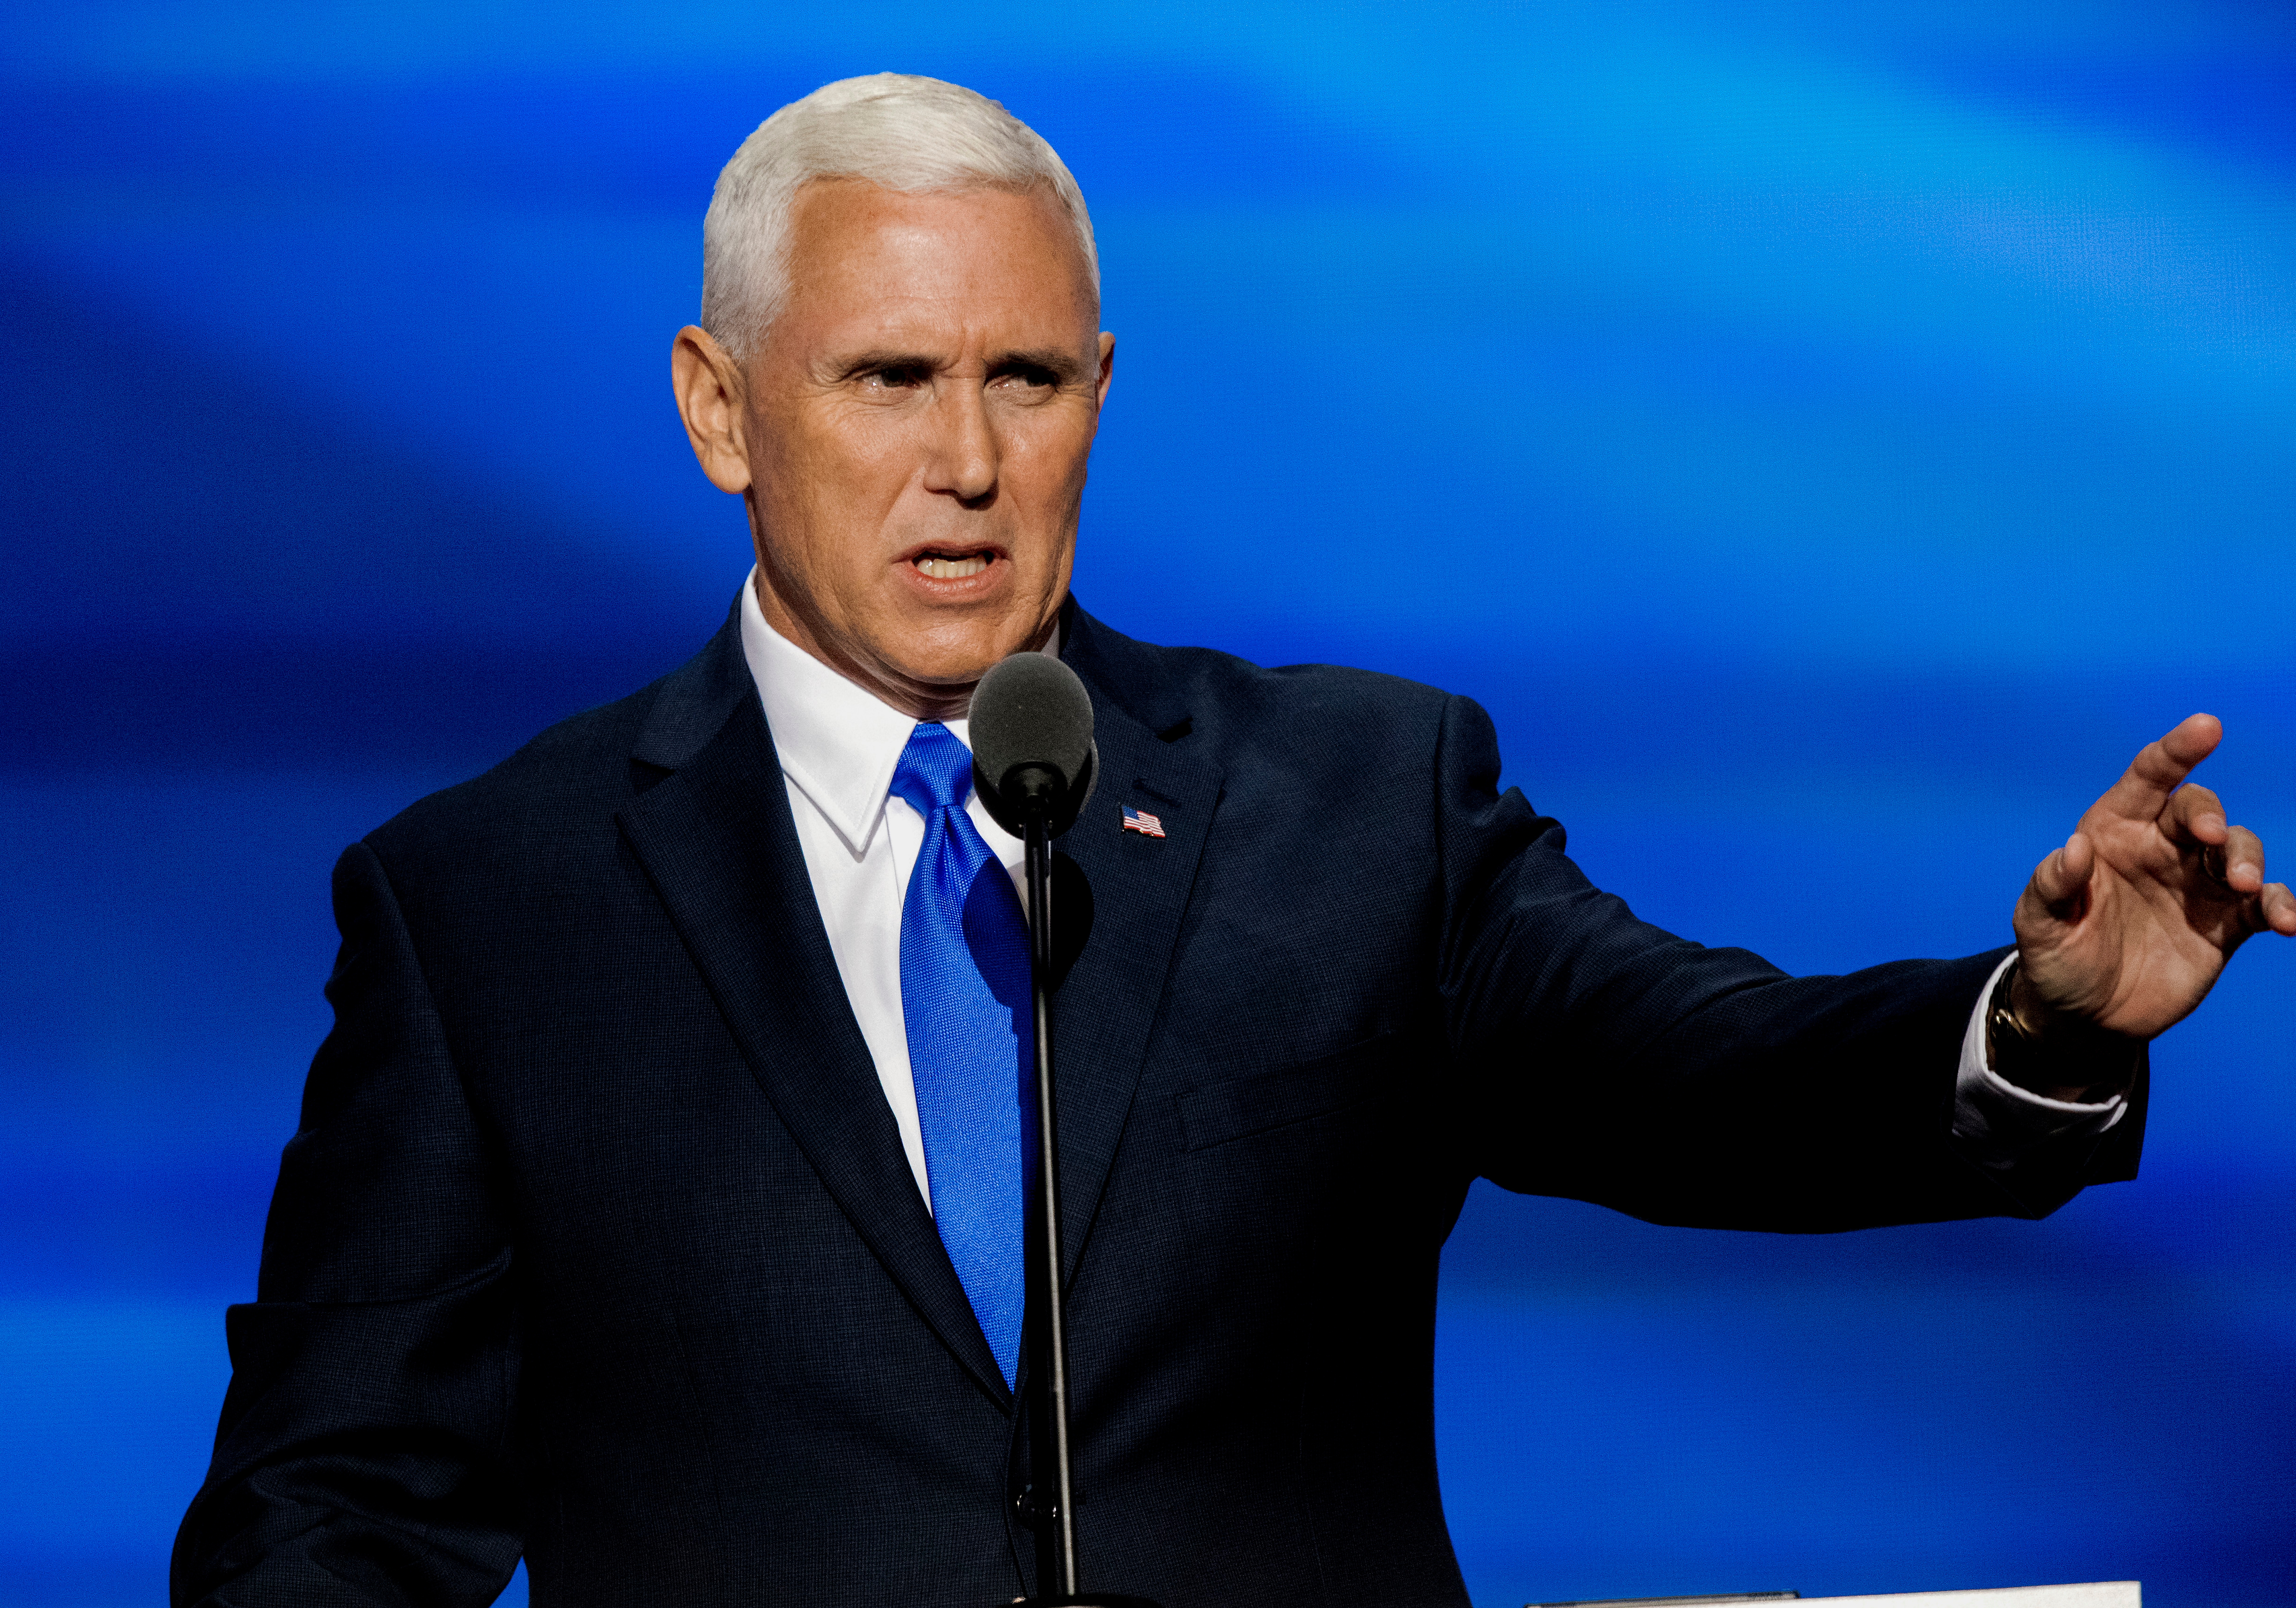 Mike Pence's Address at the 2016 Republican National Convention